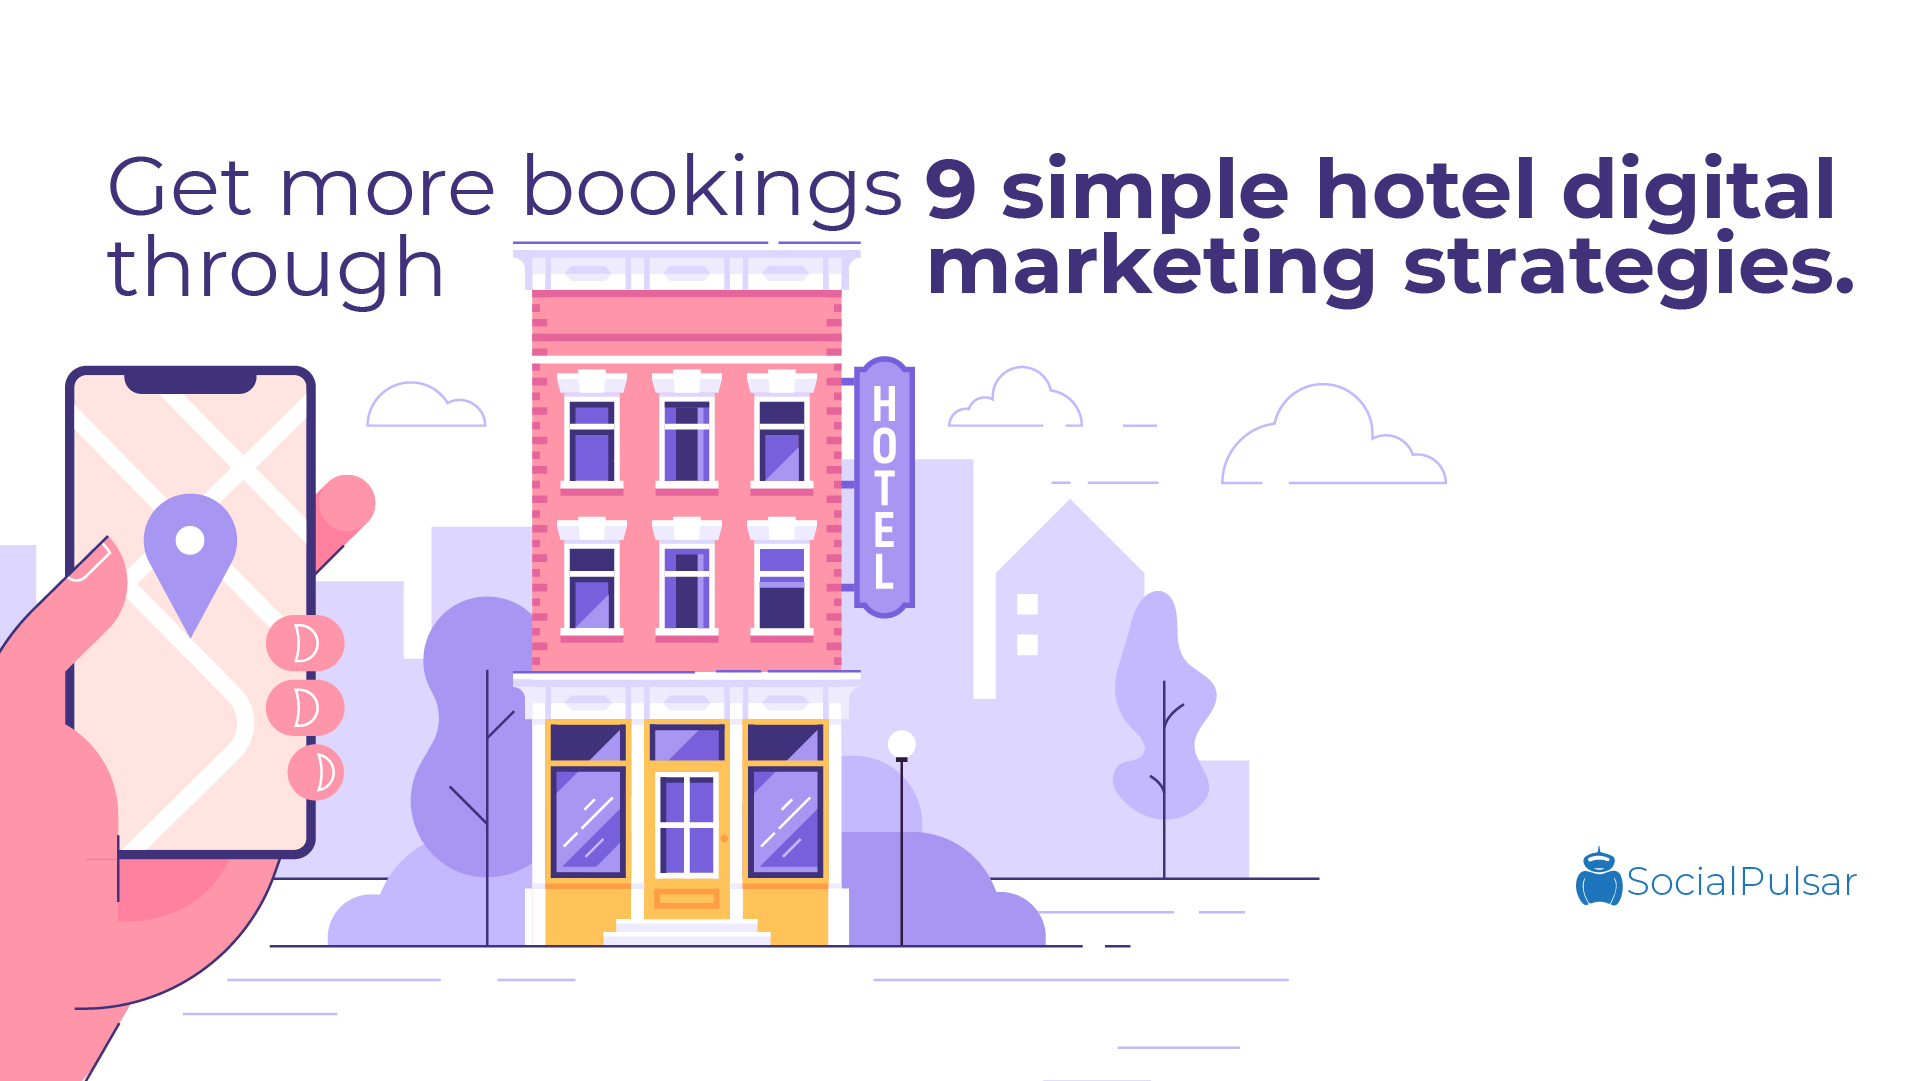 Get More Bookings Through 9 Simple Hotel Digital Marketing Strategies